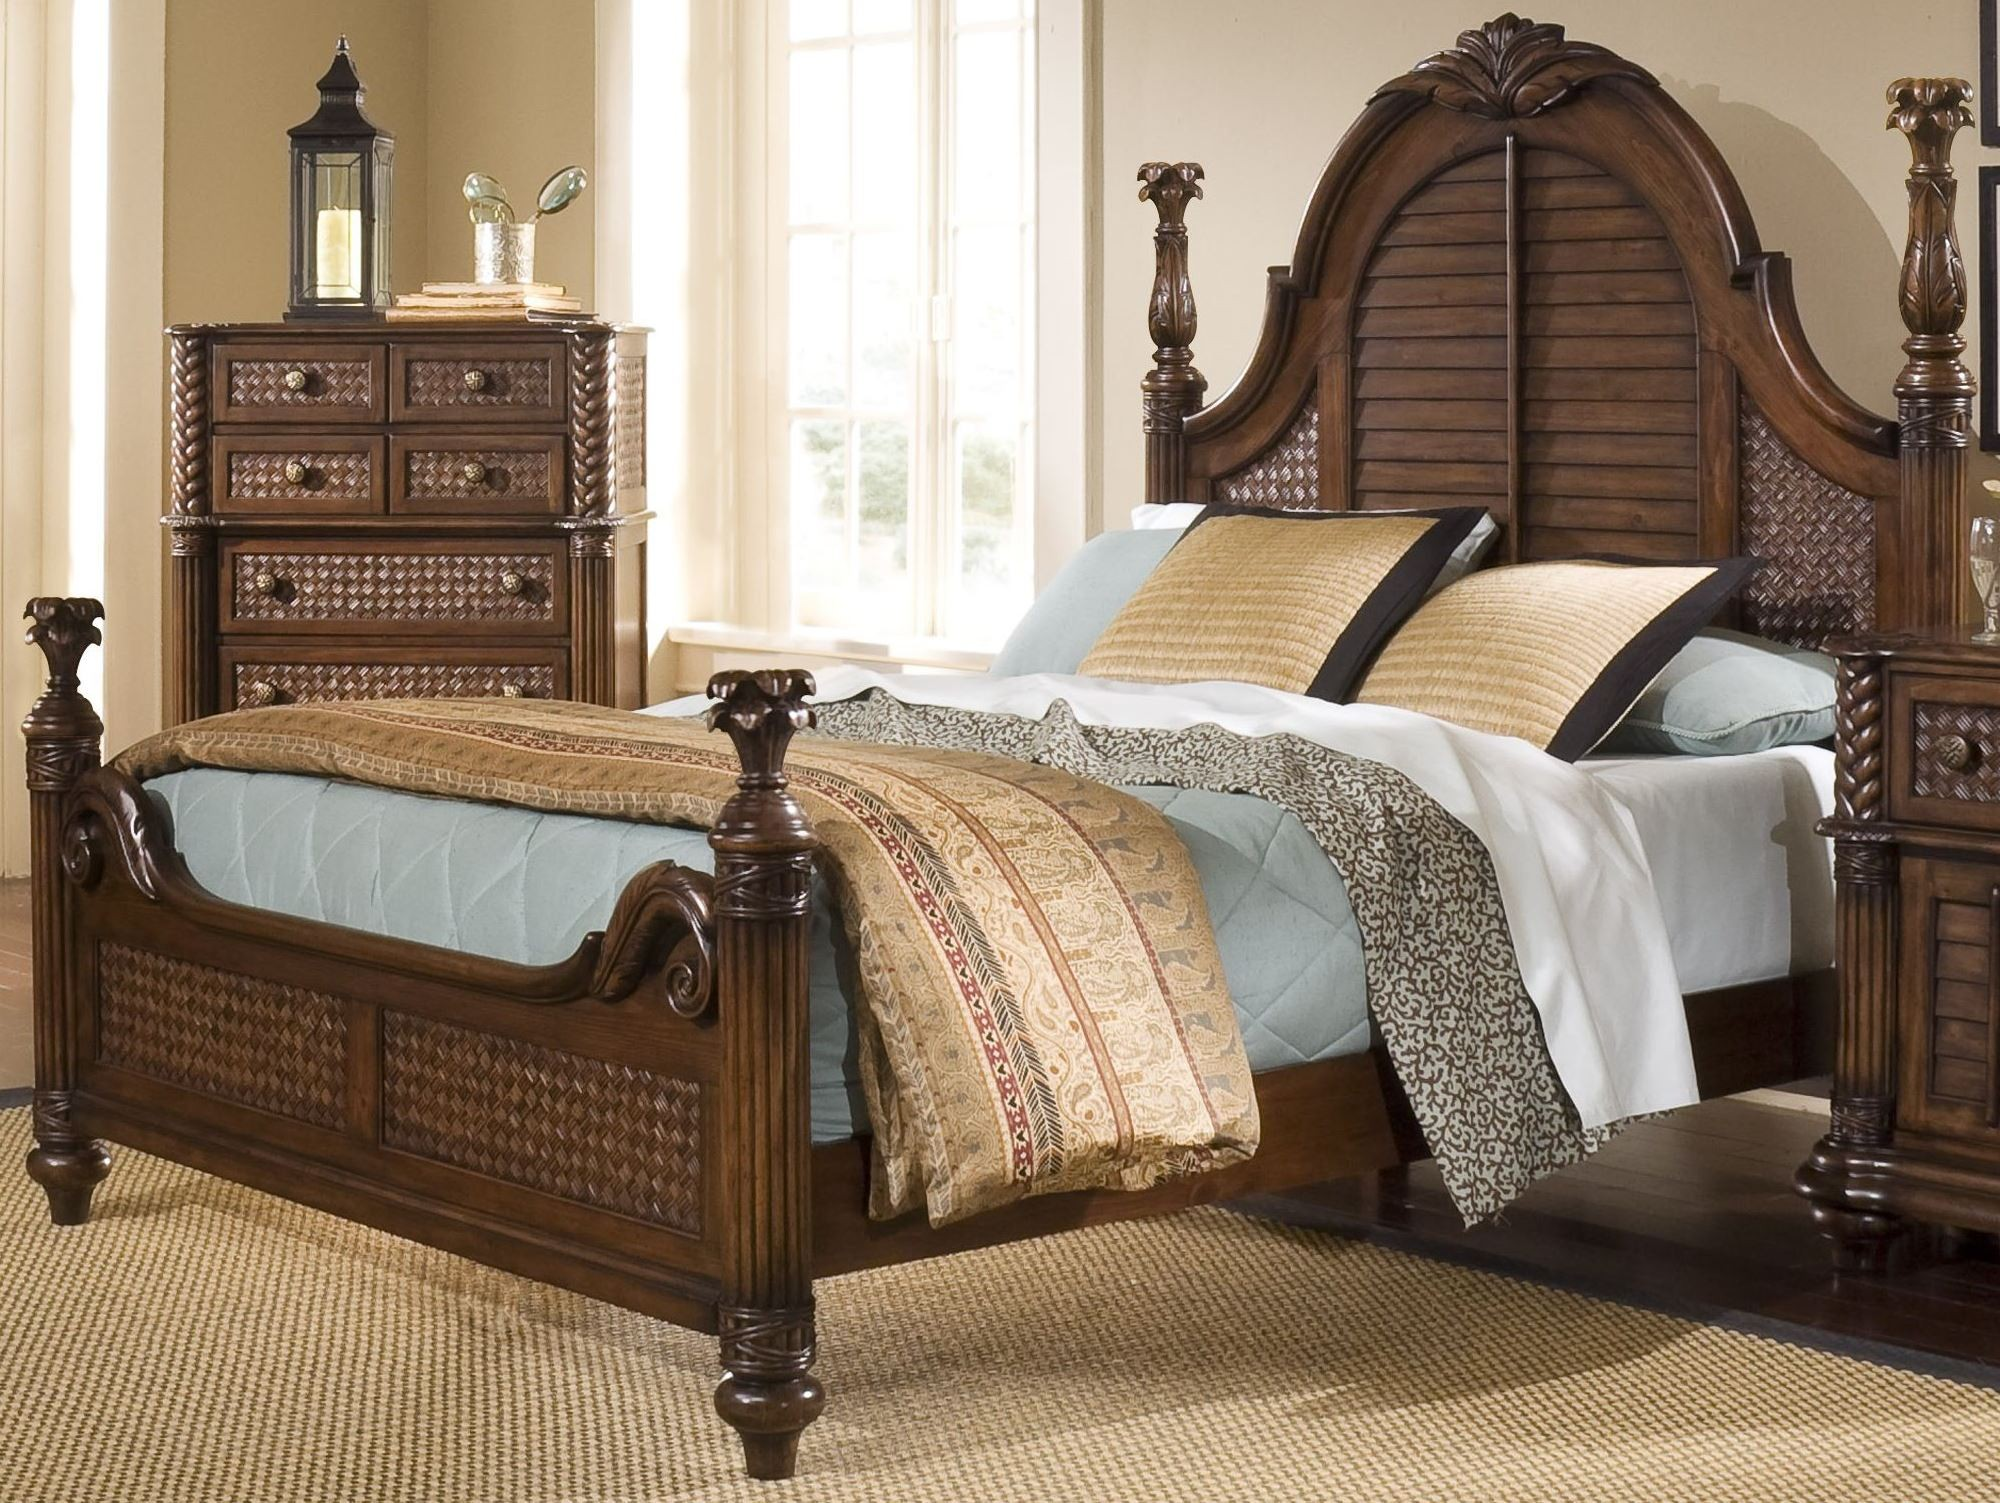 Palm Court II Coco Brown Poster Bedroom Set. Palm Court II Coco Brown Poster Bedroom Set from Progressive